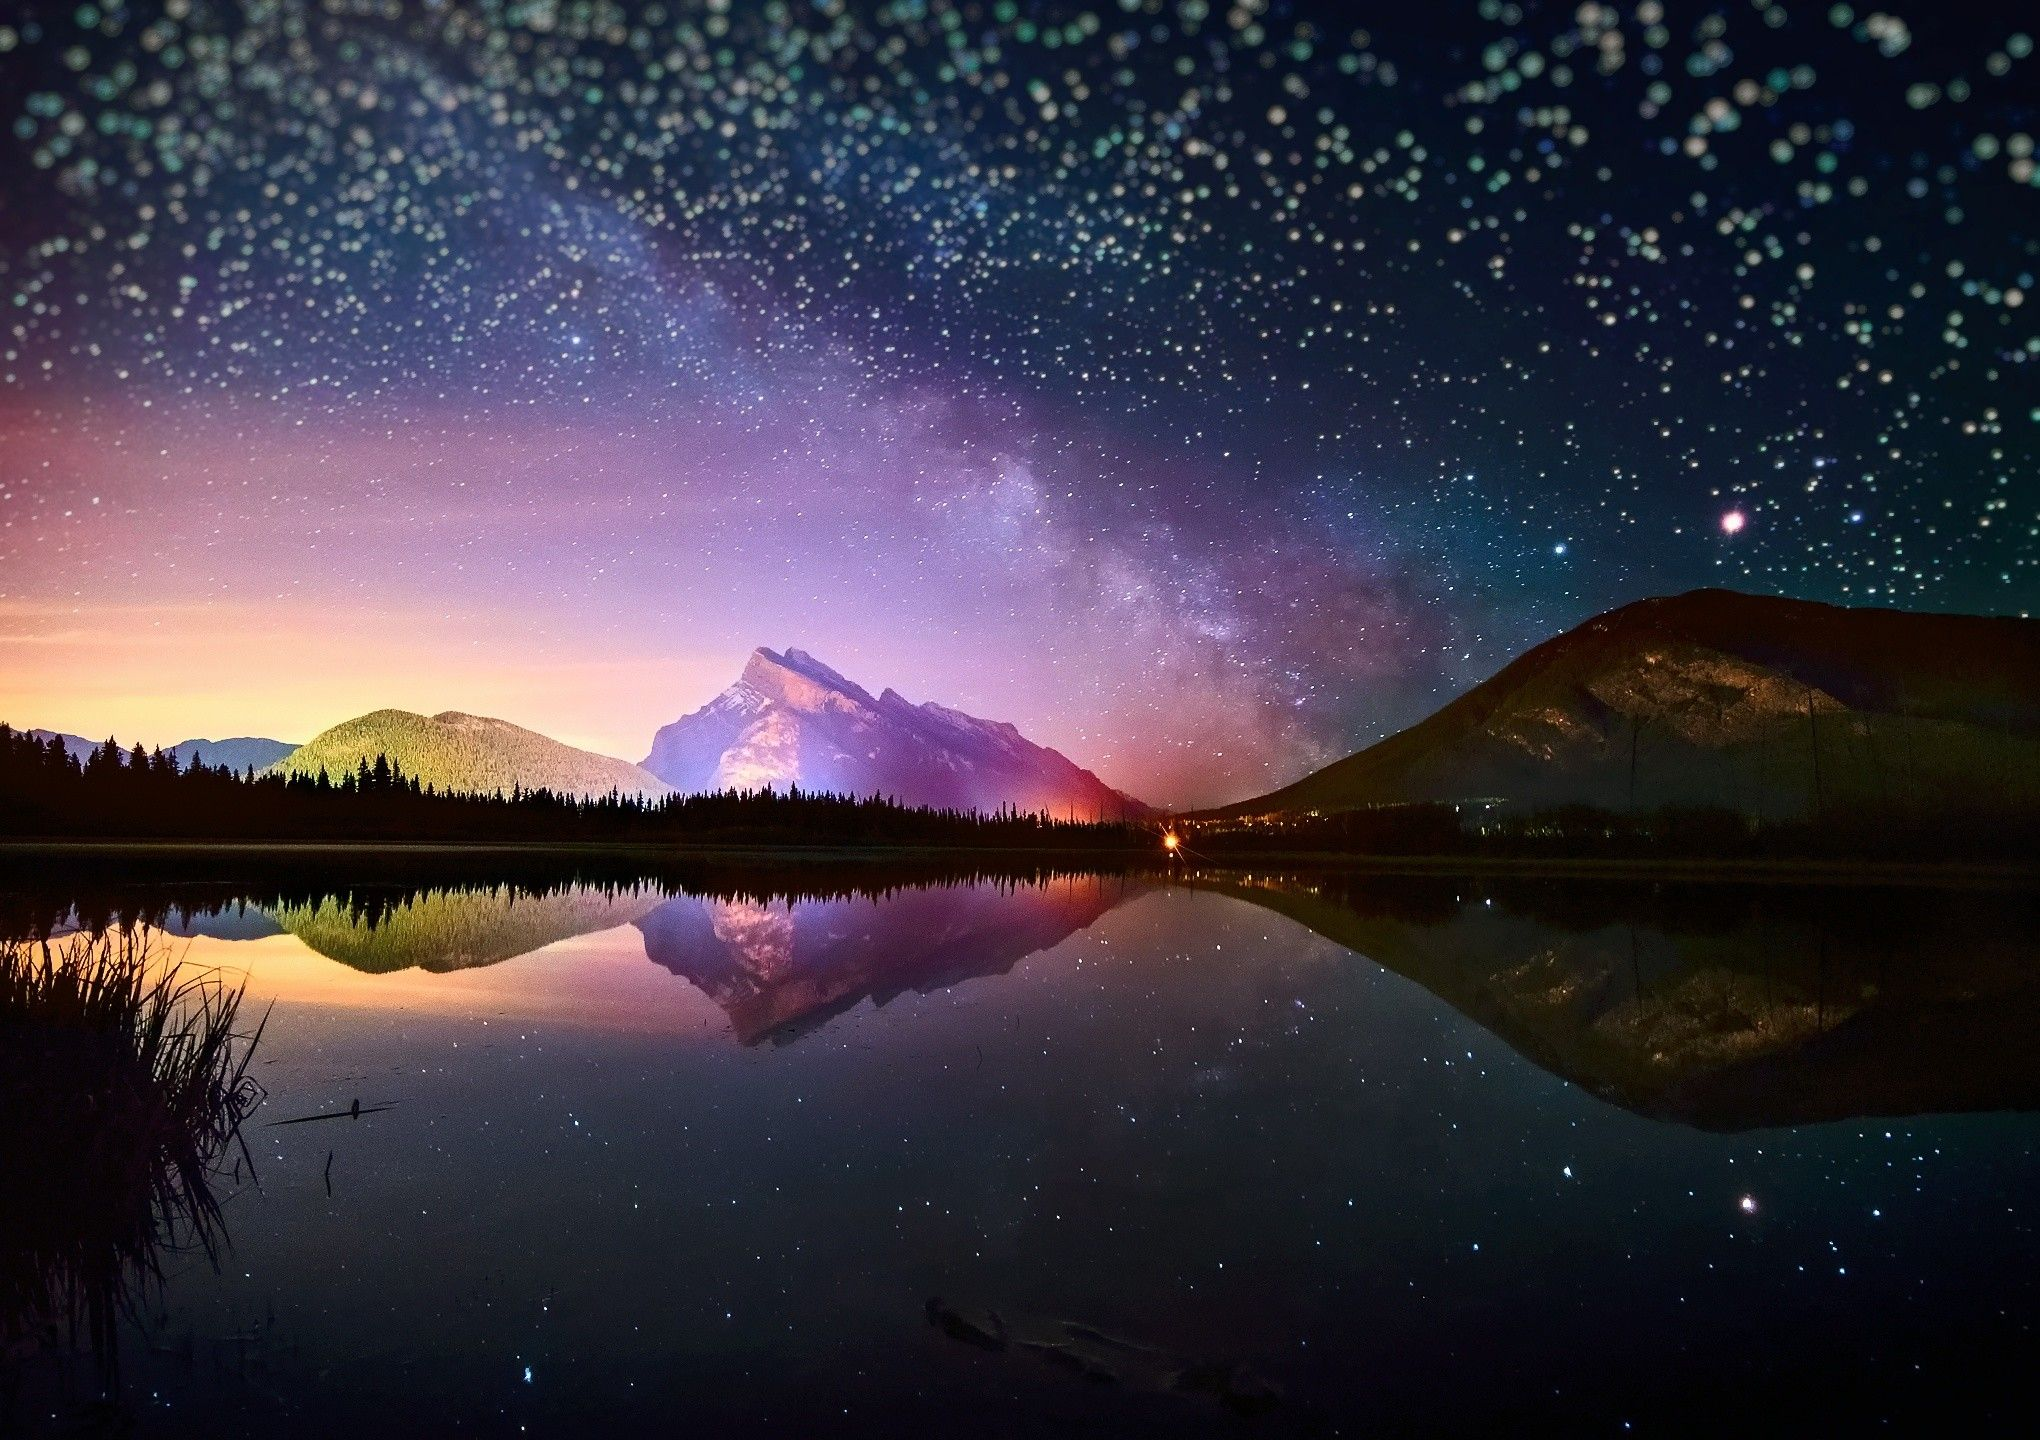 Night sky wallpapers top free night sky backgrounds for Night sky wallpaper 4k